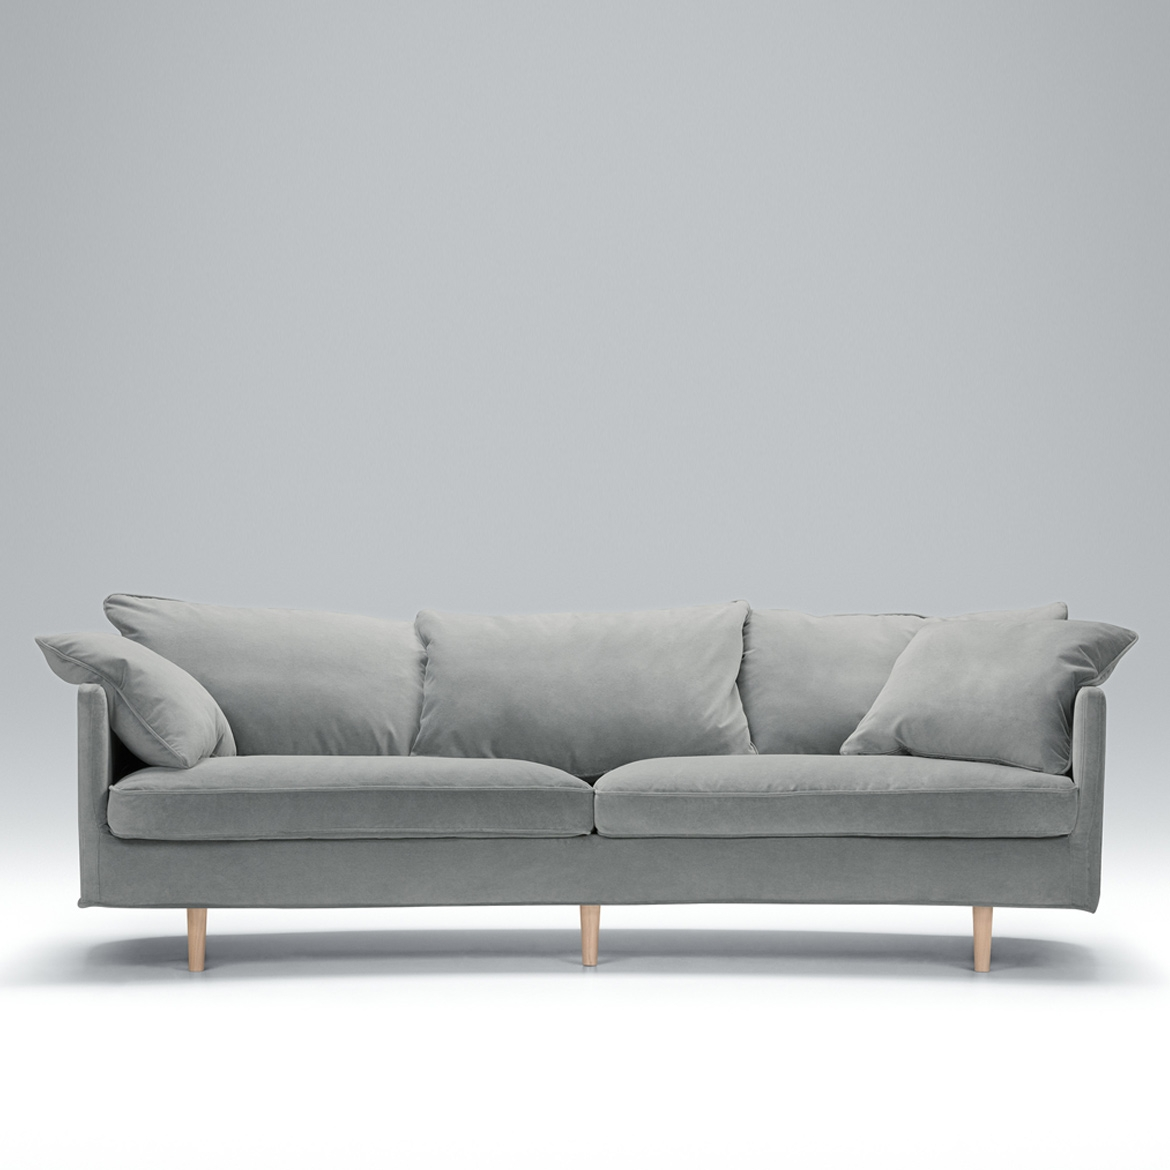 Jules 3XL seater sofa